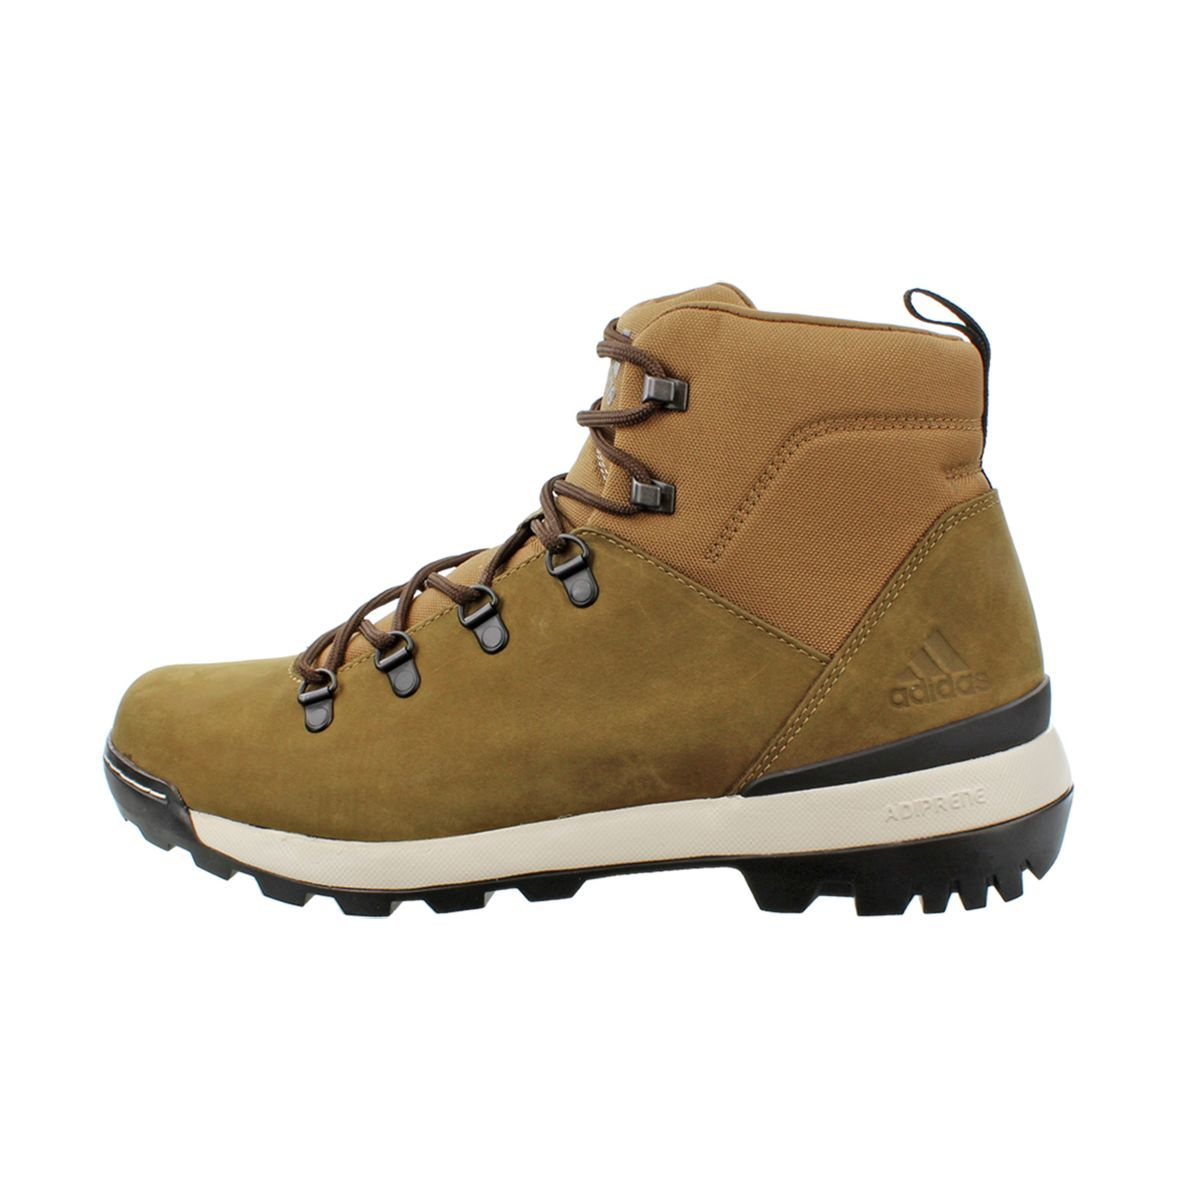 buy online 197d5 a75a1 Adidas Outdoor Trail Cruiser Mid Boot - Men s Side